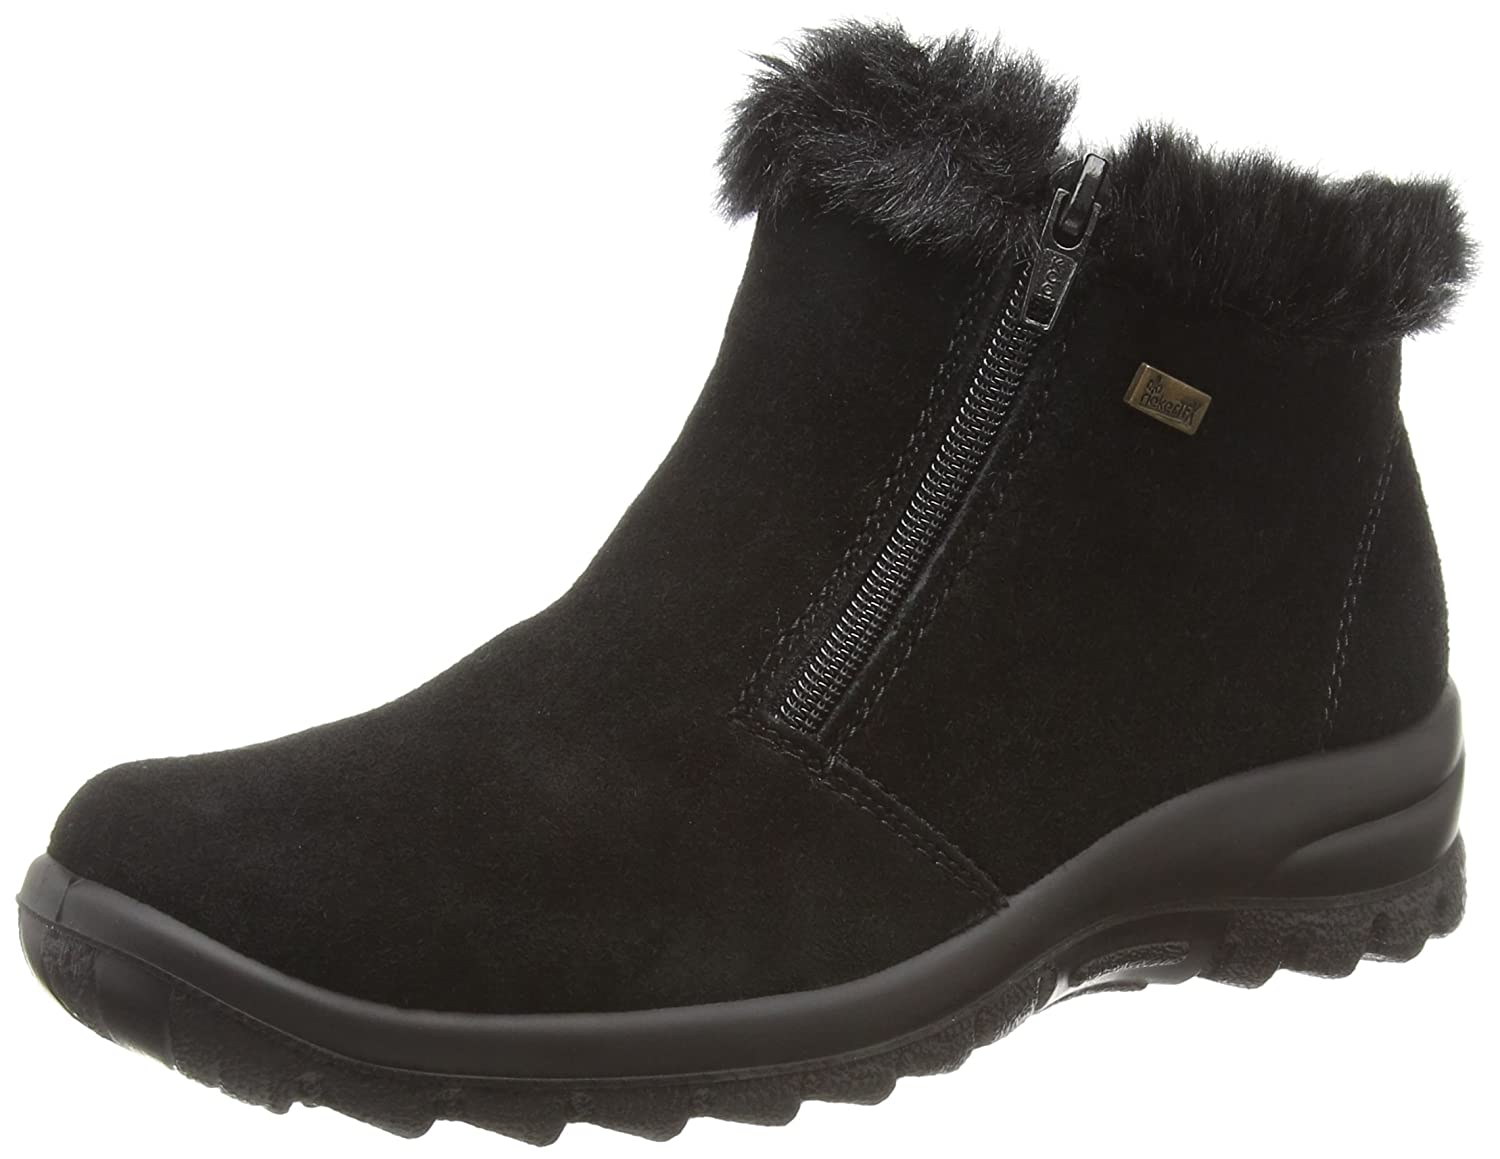 eebaffbe1e Rieker Y0363-01, Women's Ankle Boots: Amazon.co.uk: Shoes & Bags